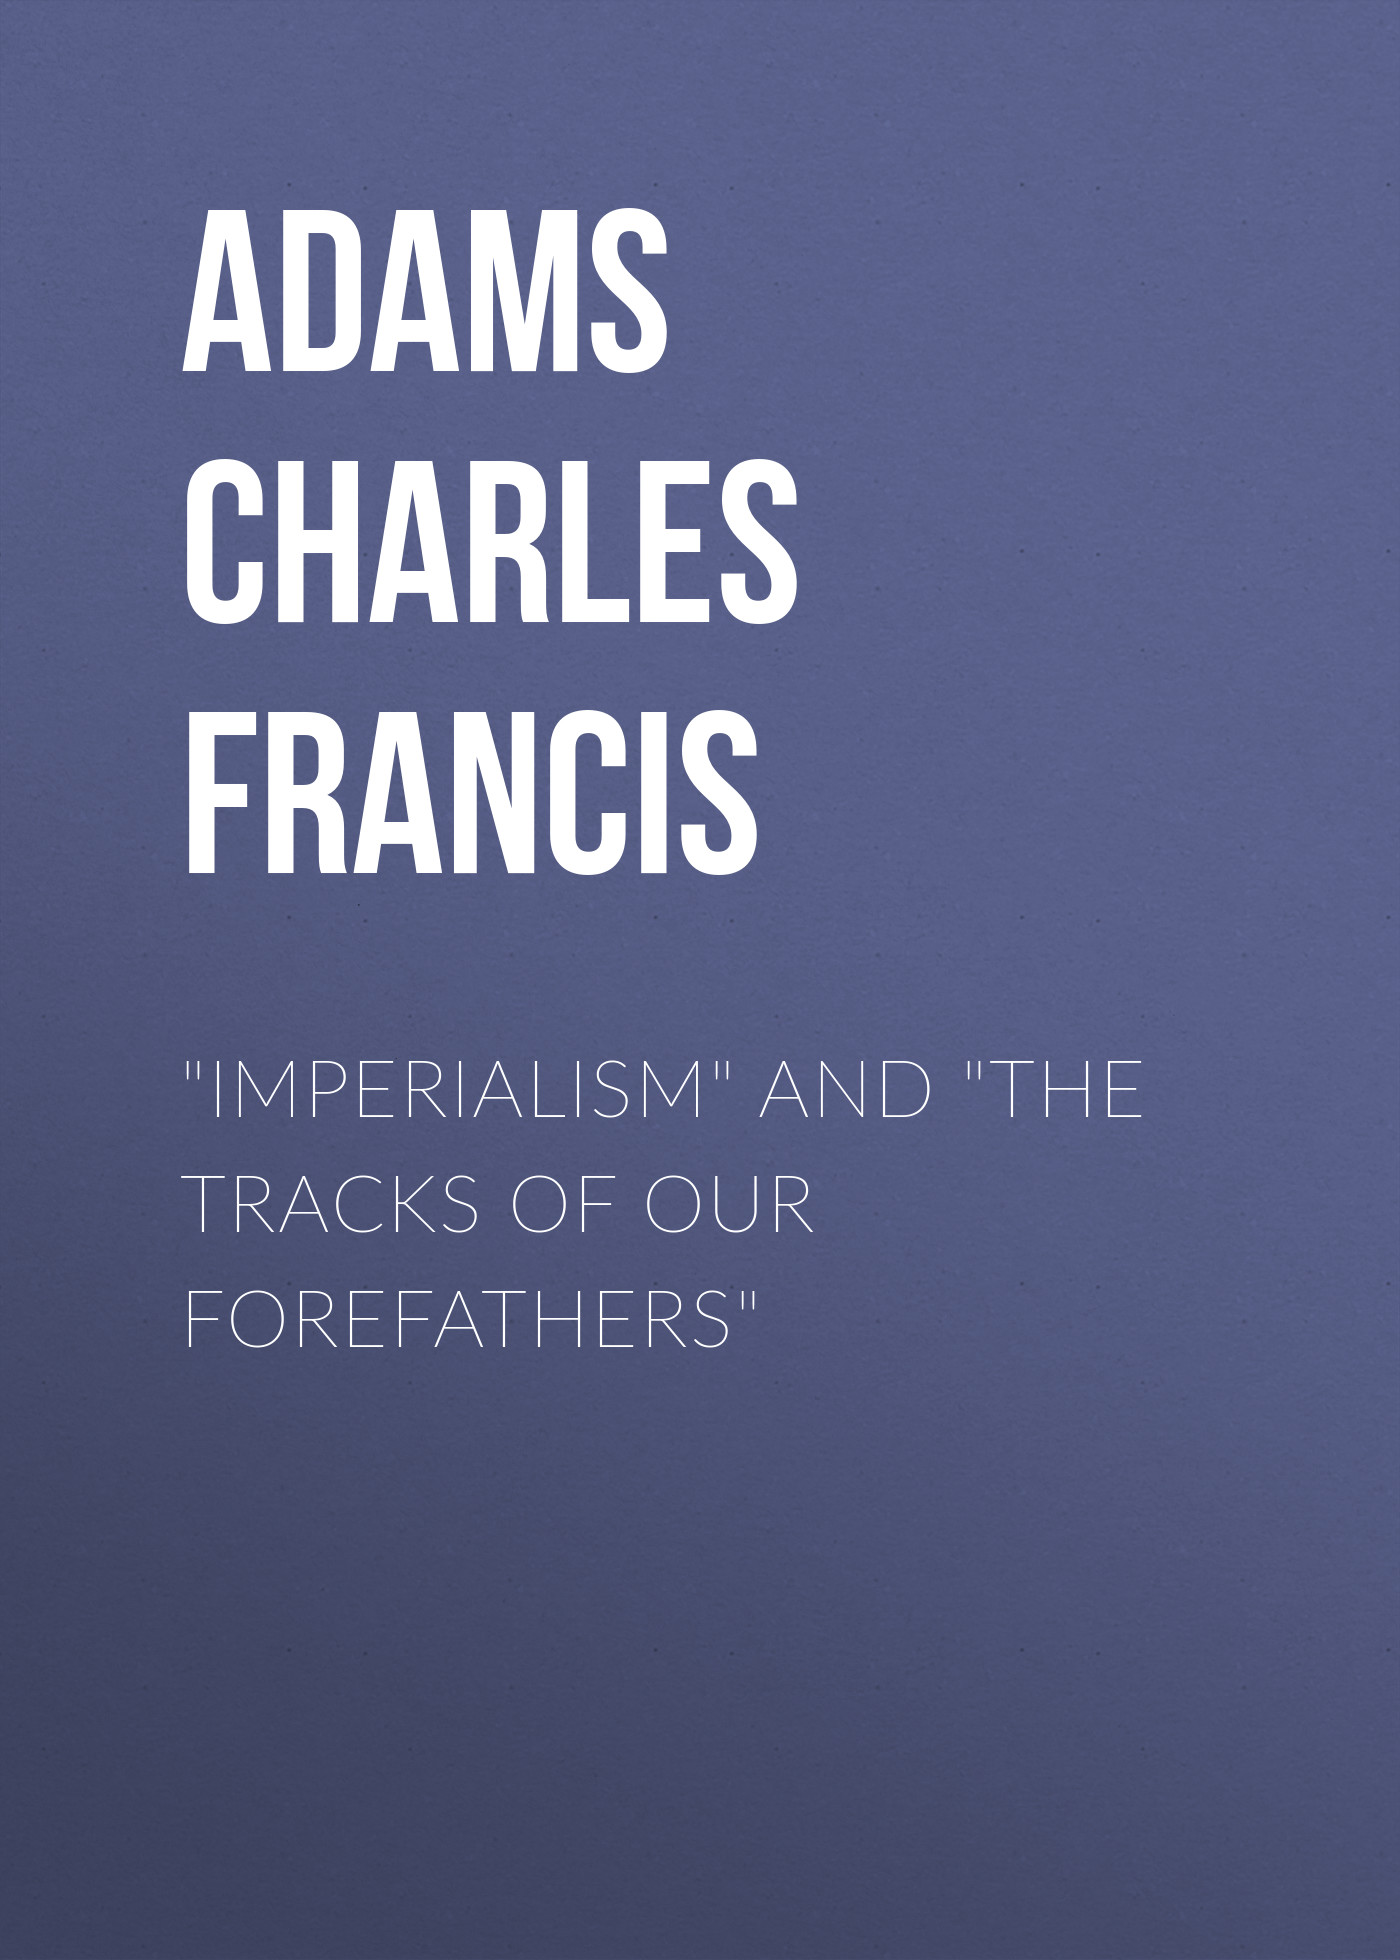 Adams Charles Francis Imperialism and The Tracks of Our Forefathers [vk] helipot r257c 10k conductive plastic potentiometer 360 degree turn switch